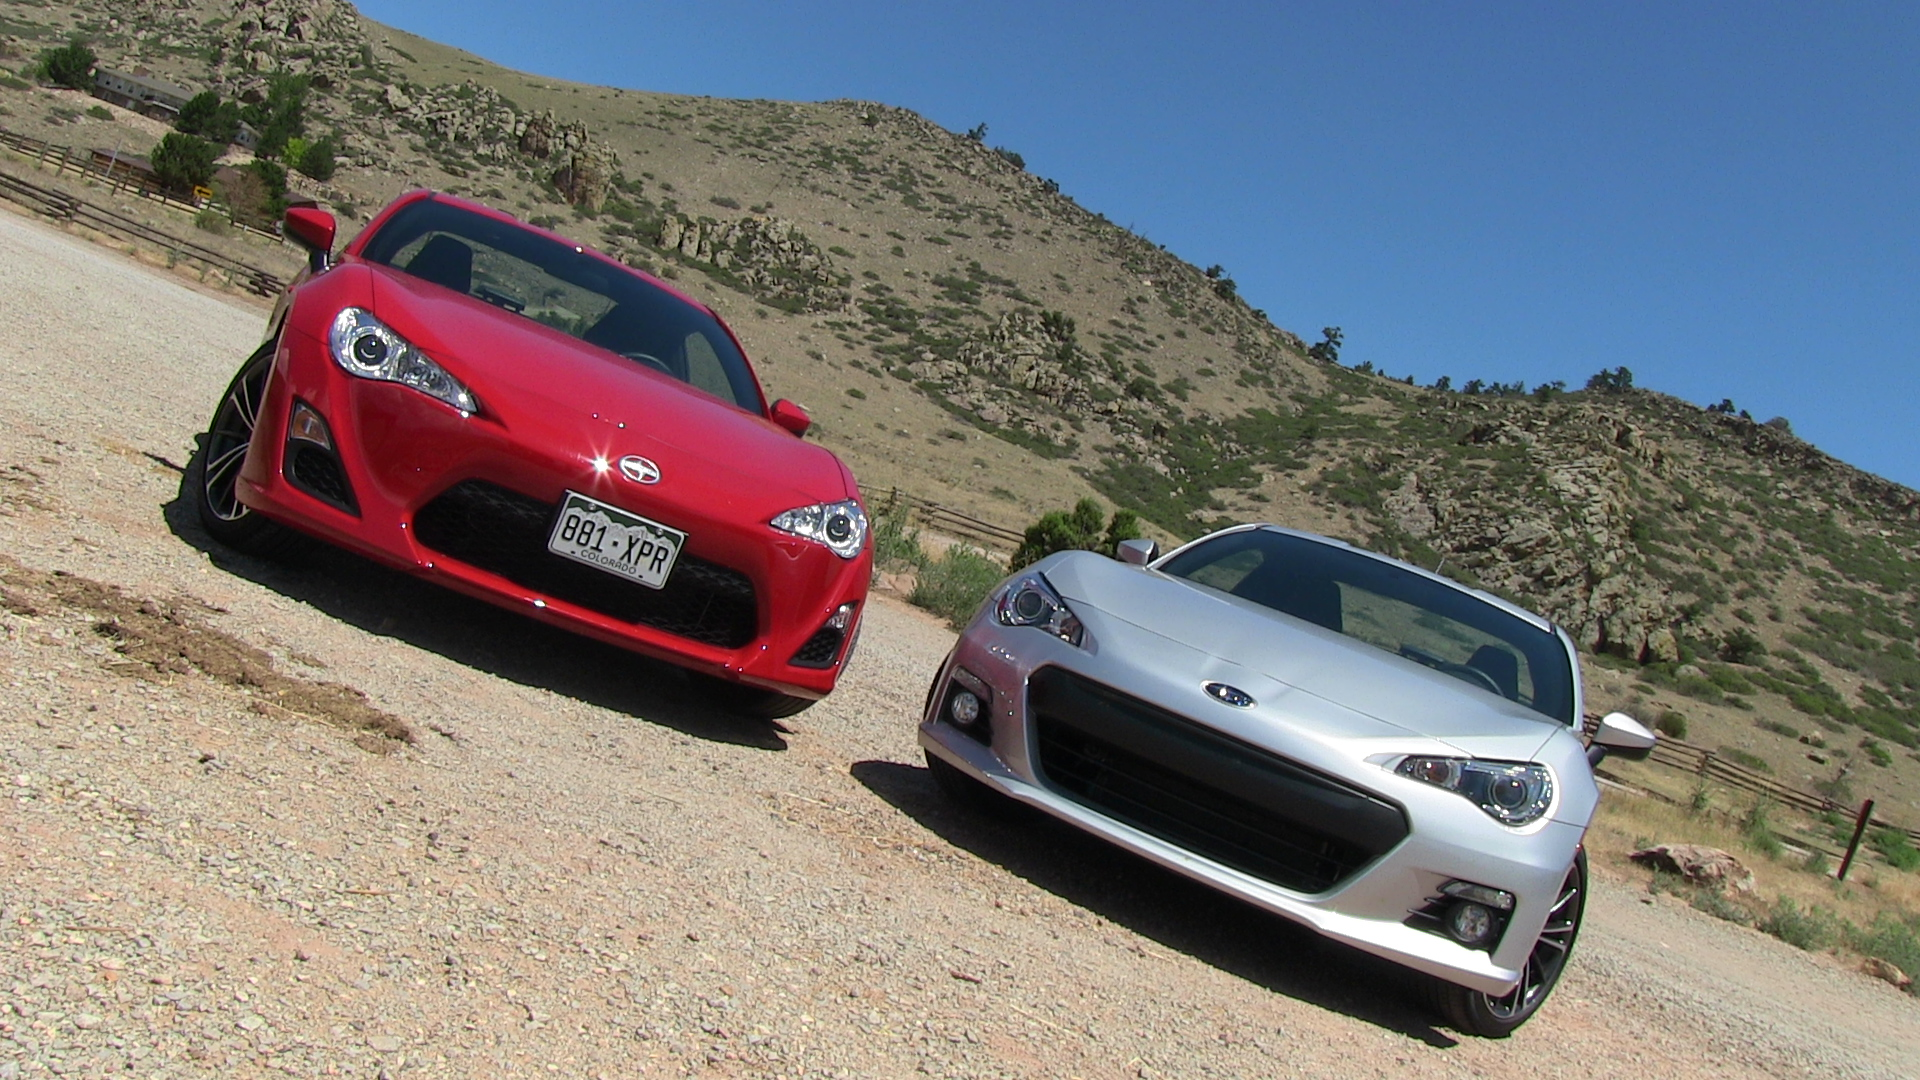 The Almost Identical 2017 Subaru Brz And Scion Fr S Herald Return Of Light Affordable Rear Wheel Drive Sports Car